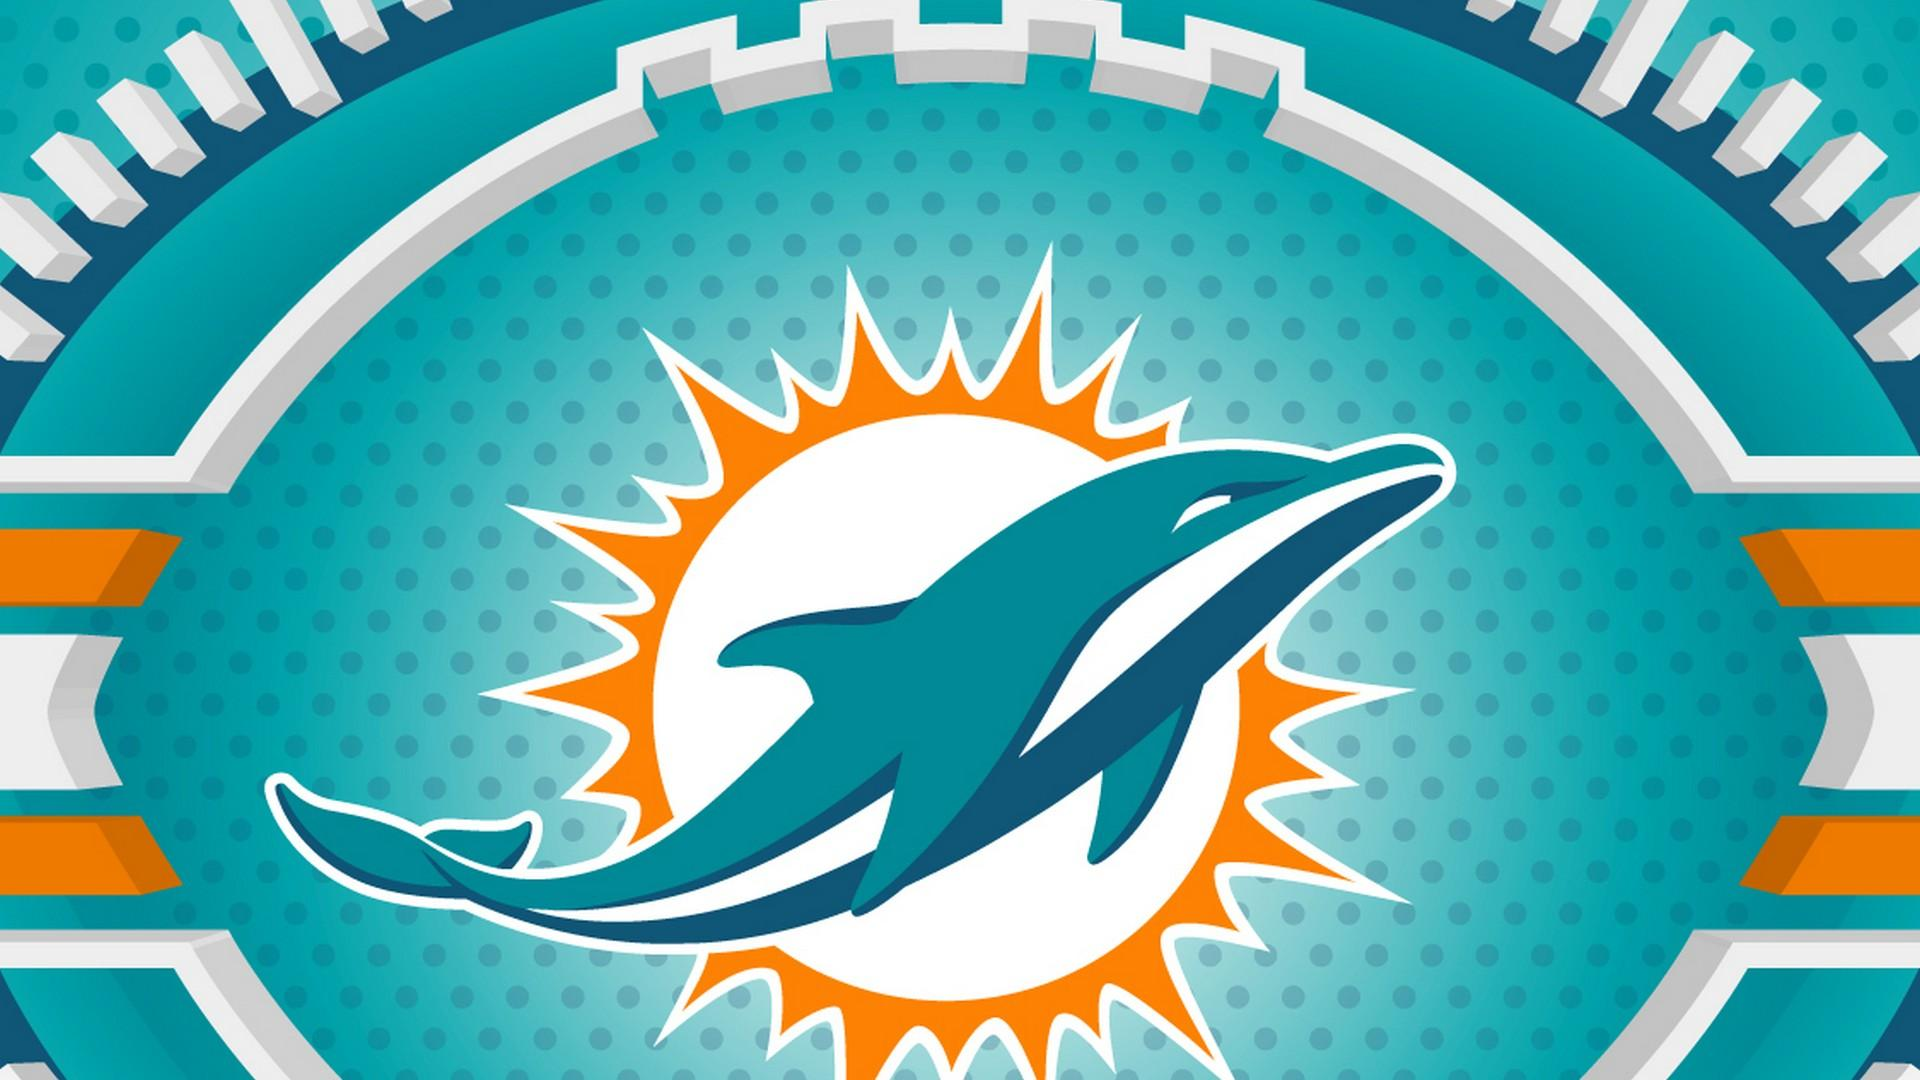 Miami Dolphins 2019 Wallpapers - Wallpaper Cave